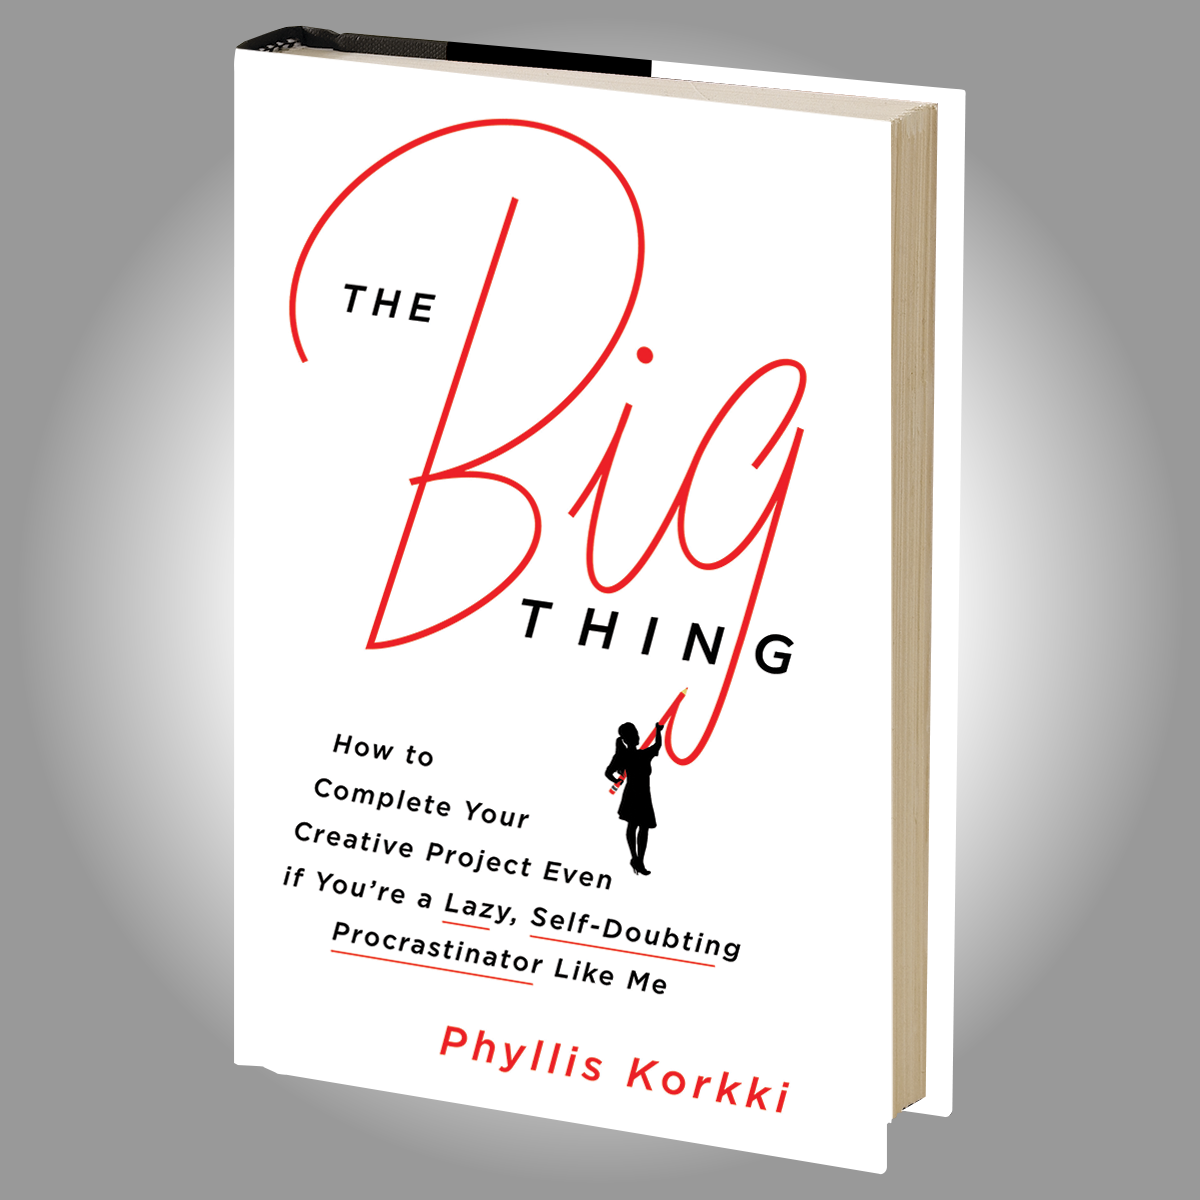 The Big Thing: An Interview With Phyllis Korkki